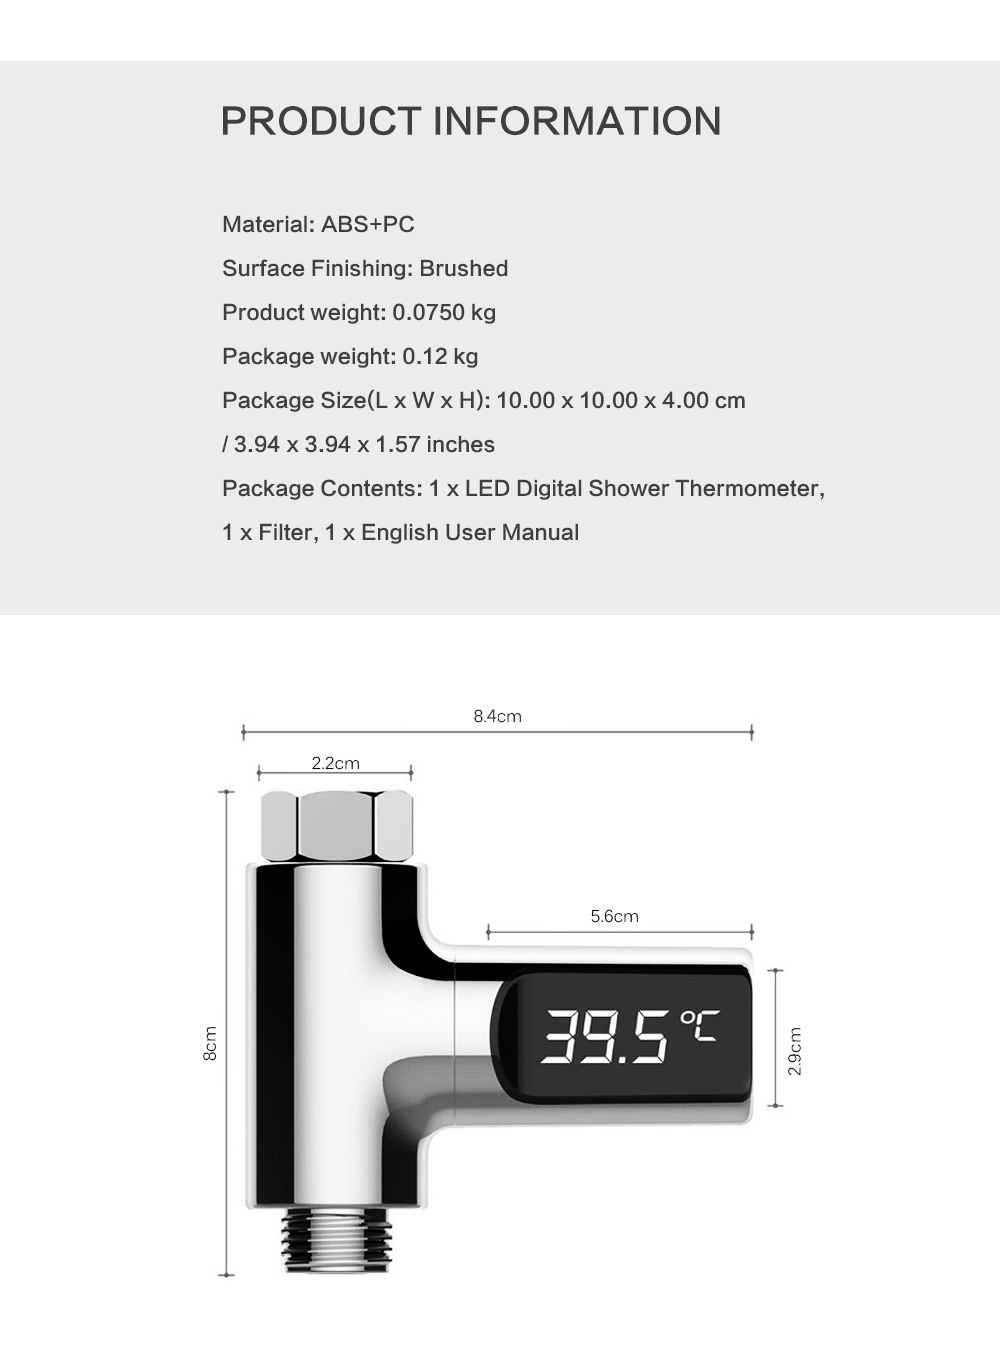 Hf20c147b6bd34df58199627a2fb21175q LED Temperature Display Bathroom Shower Faucet Electricity Water Temperature Monitor for Baby Care Digital Faucet Thermometer